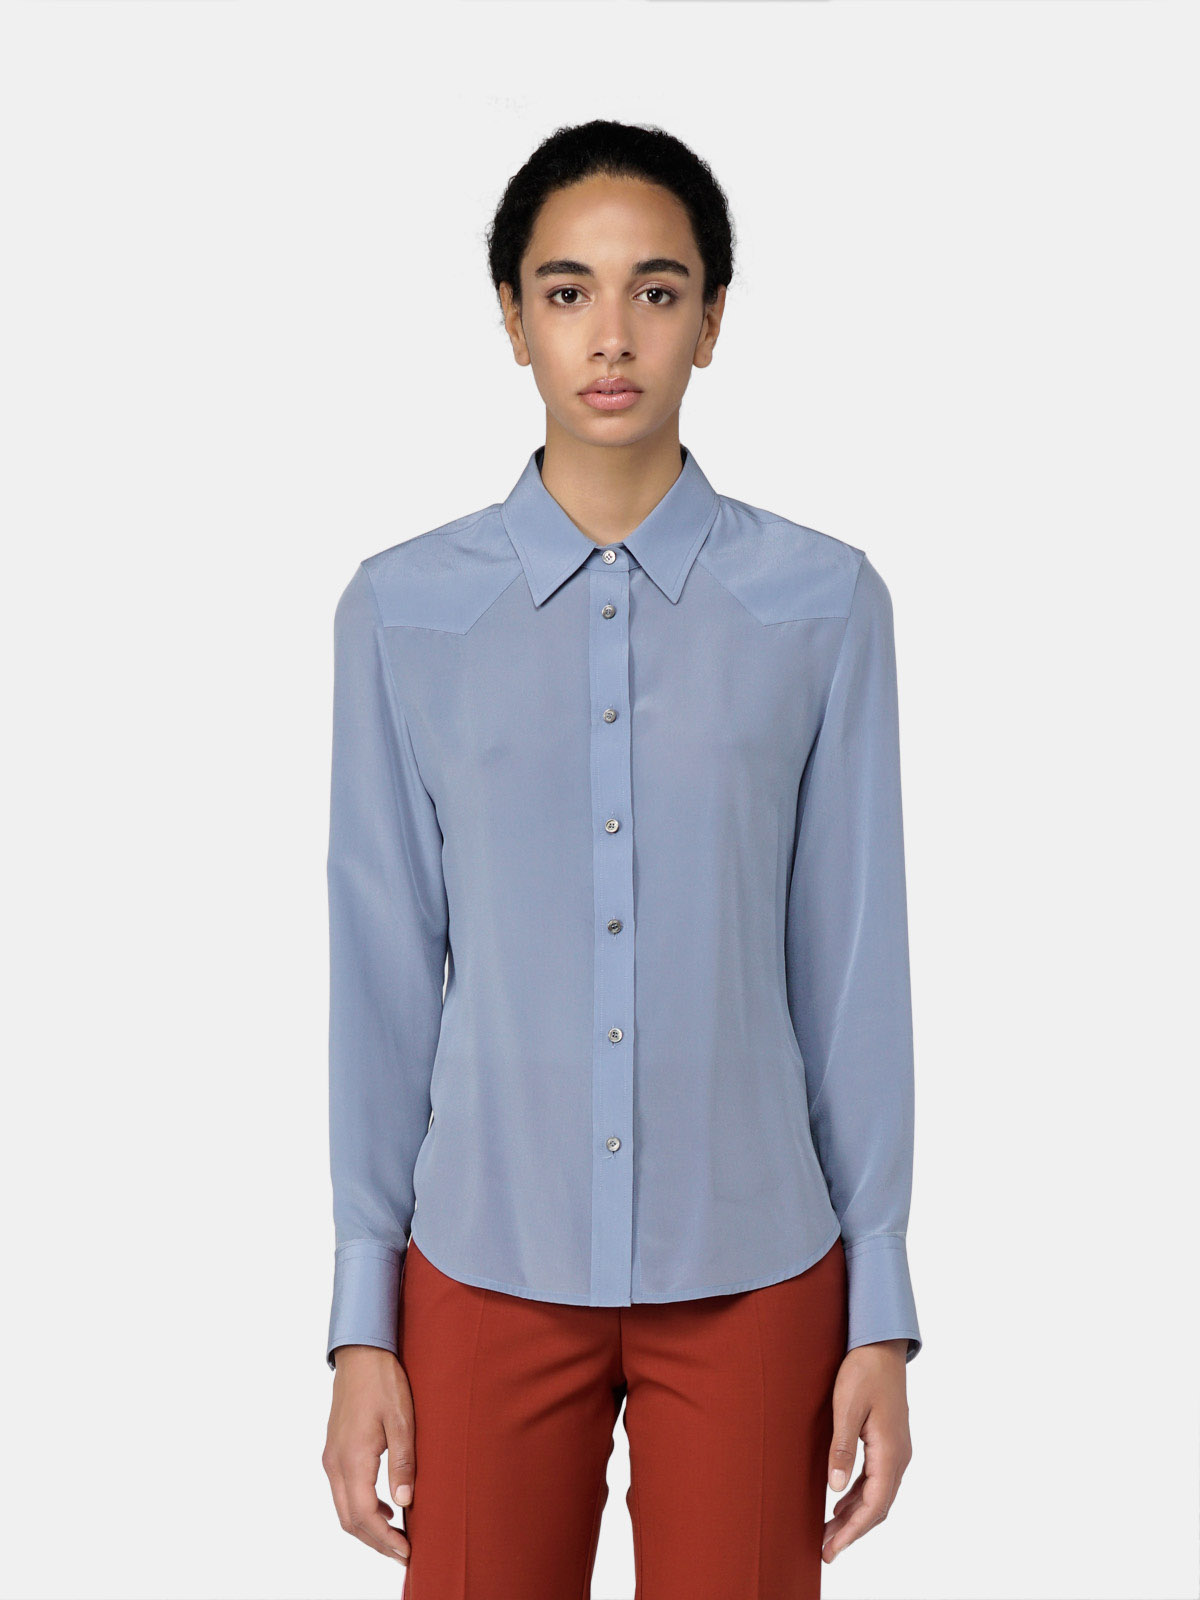 Golden Goose - Alicia shirt in silk crepe de chine in